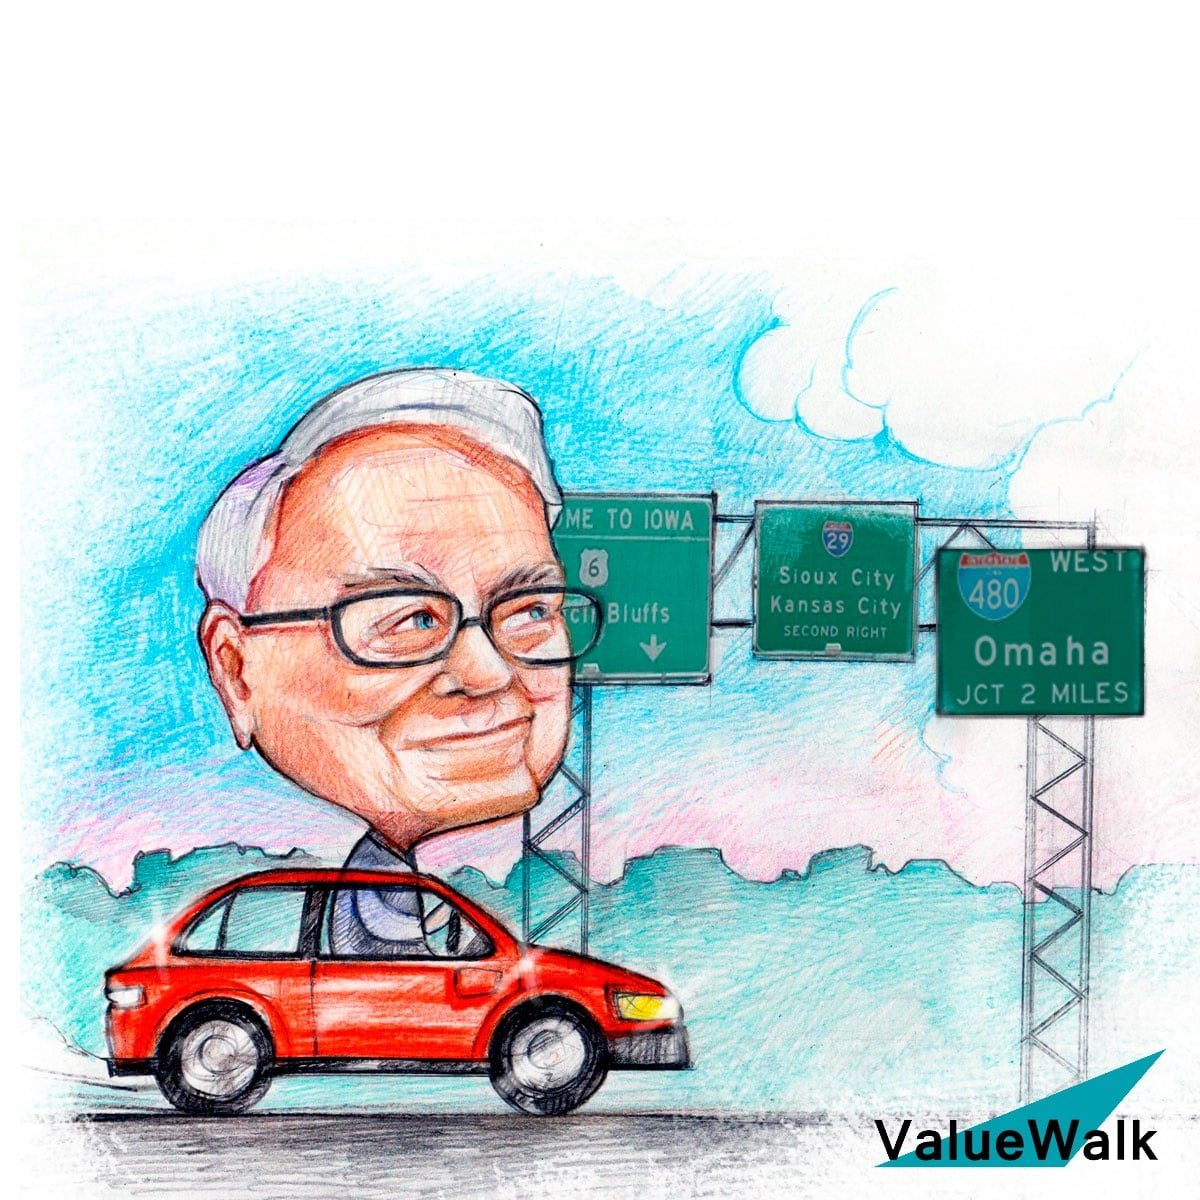 Billionaire Investor Warren Buffett Berkshire Hathaway chairman and CEO Warren Buffett interview NASDAQ:AAPL shares of apple warren buffett index funds Warren Buffett estimate of intrinsic value